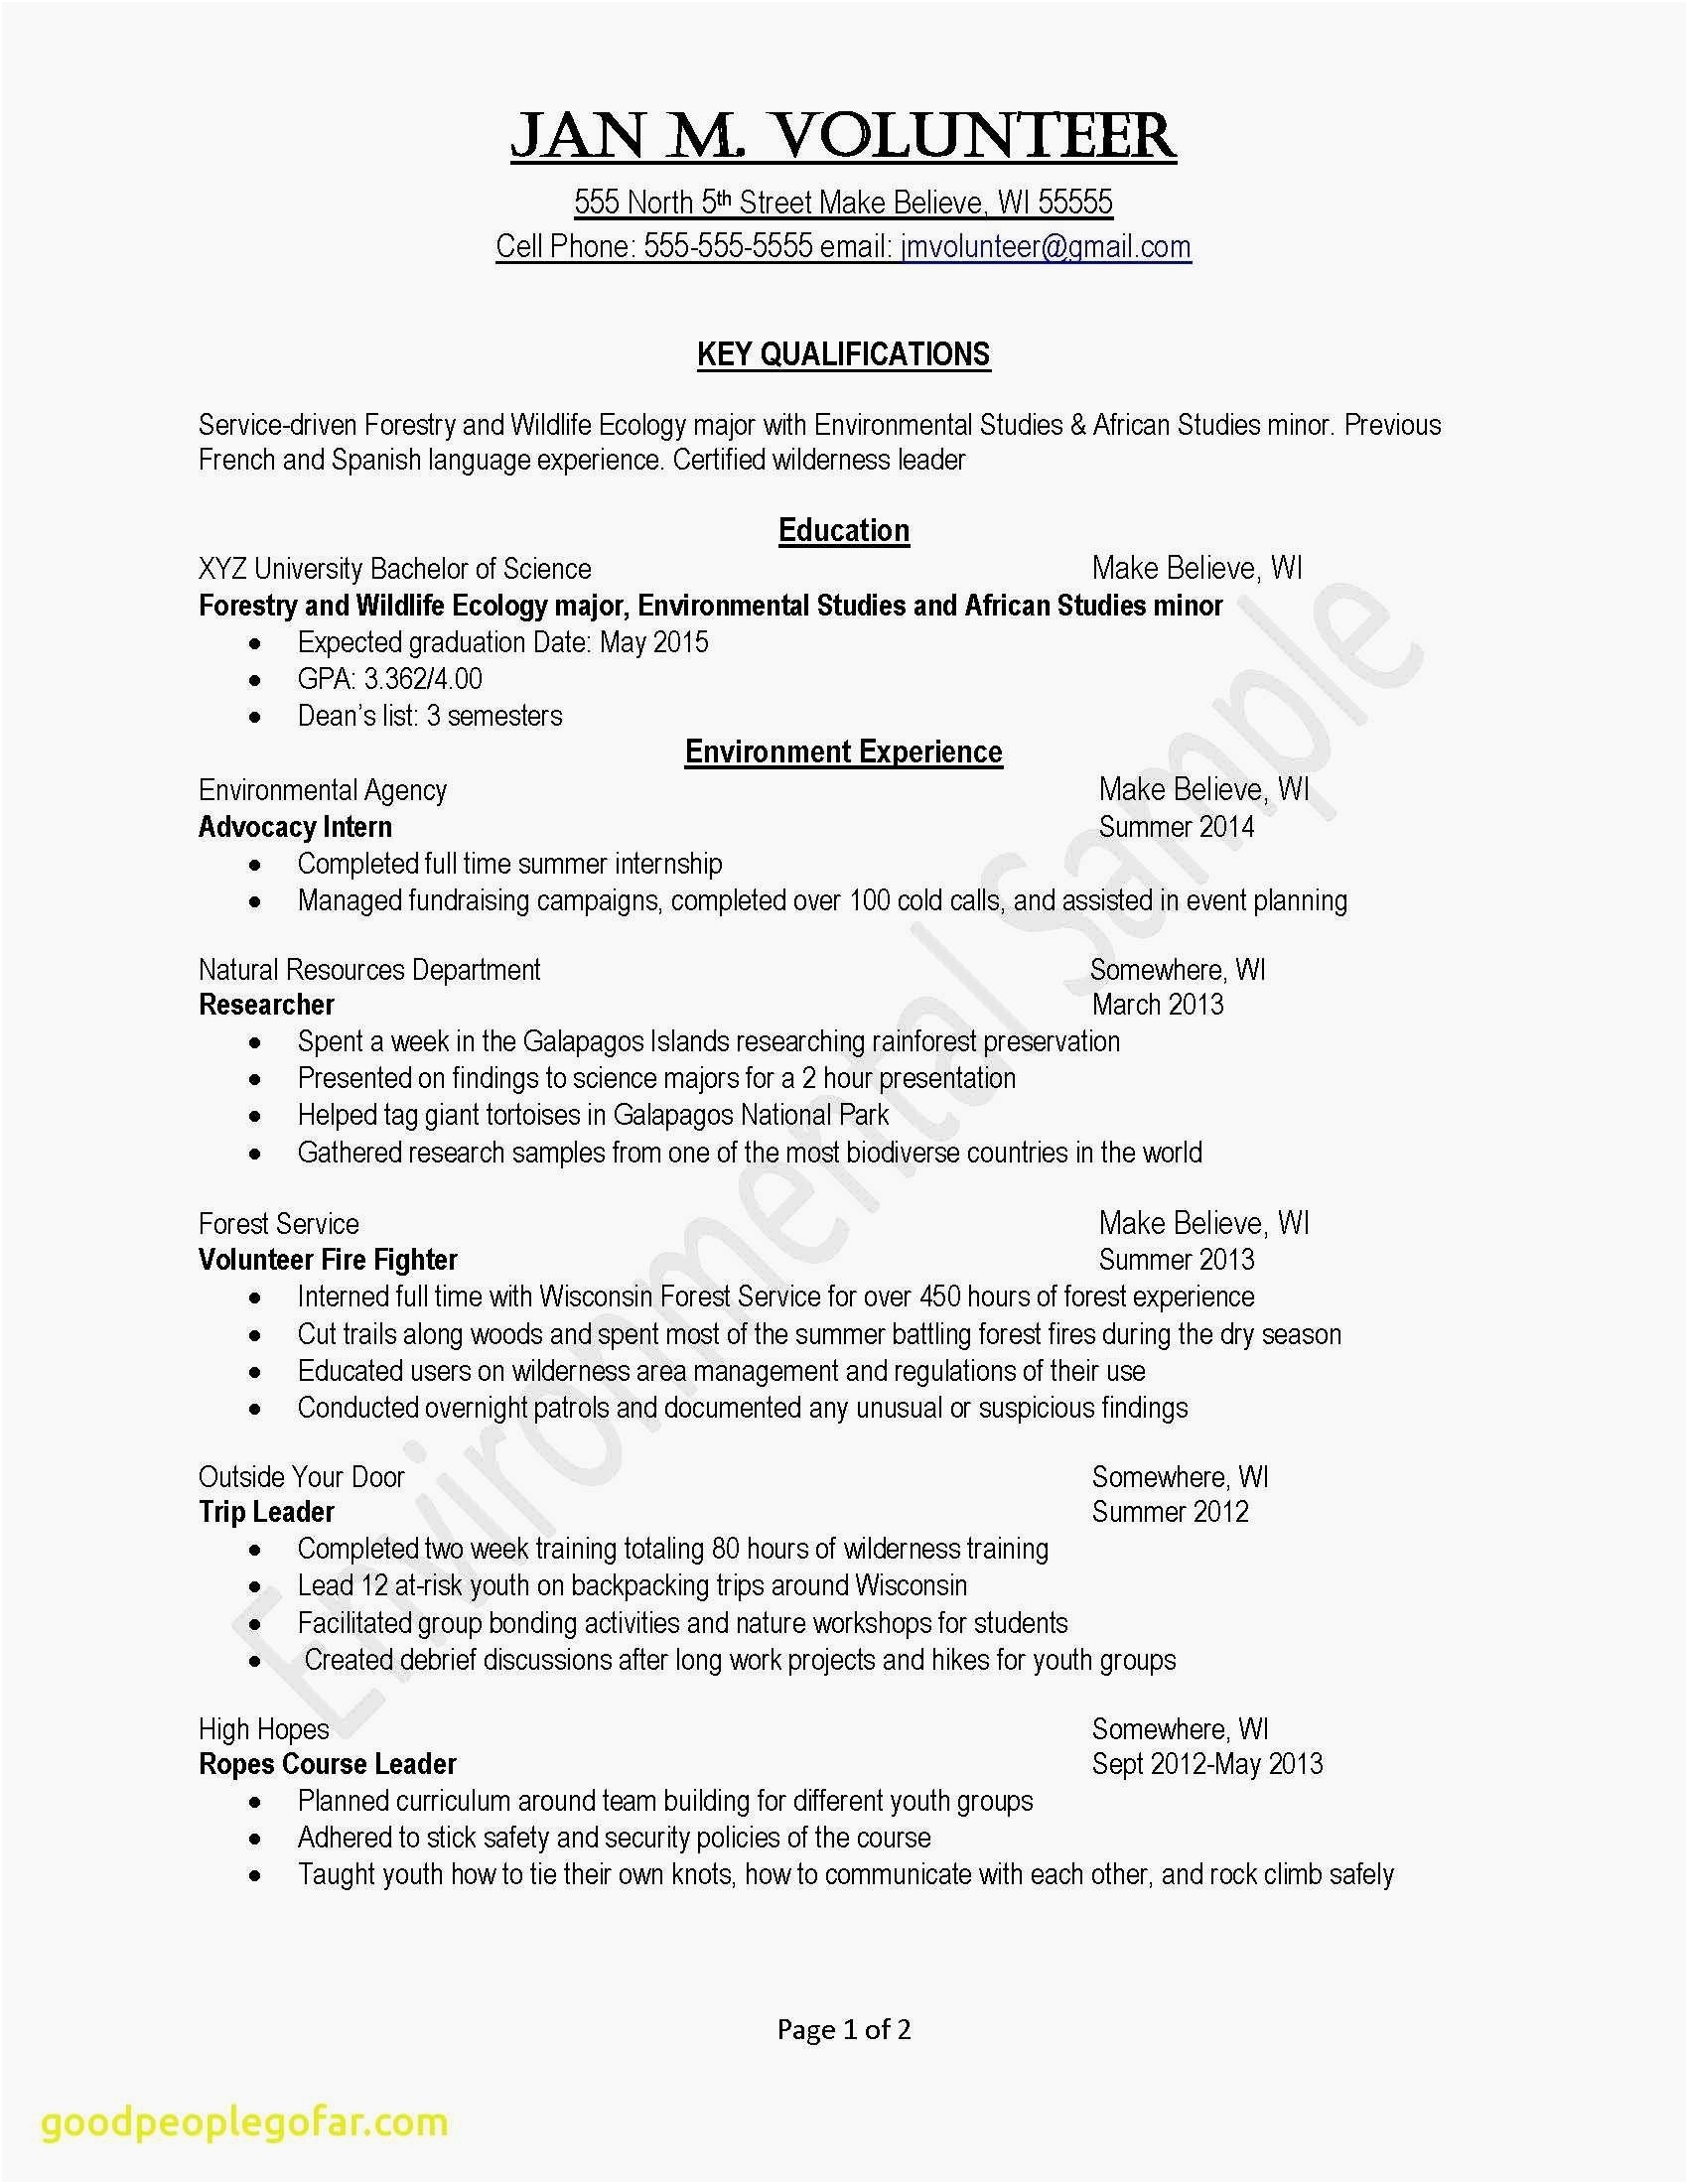 Resume Writers Near Me - 19 Awesome Certified Professional Resume Writer